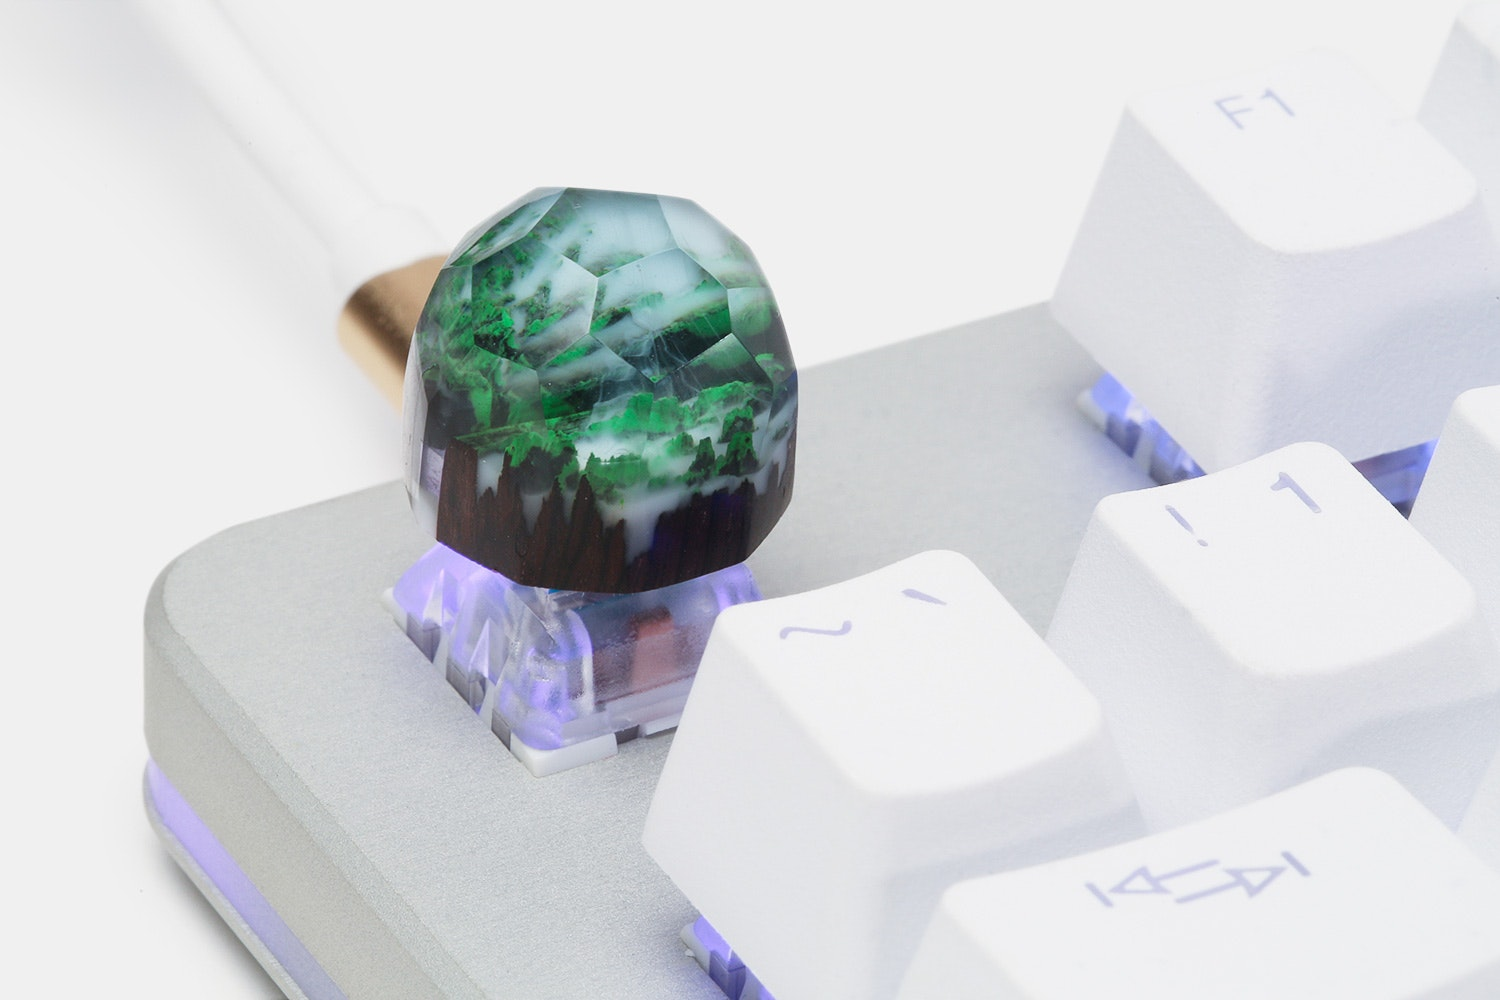 Polygonal Mini Iceland Wood & Resin Artisan Keycap